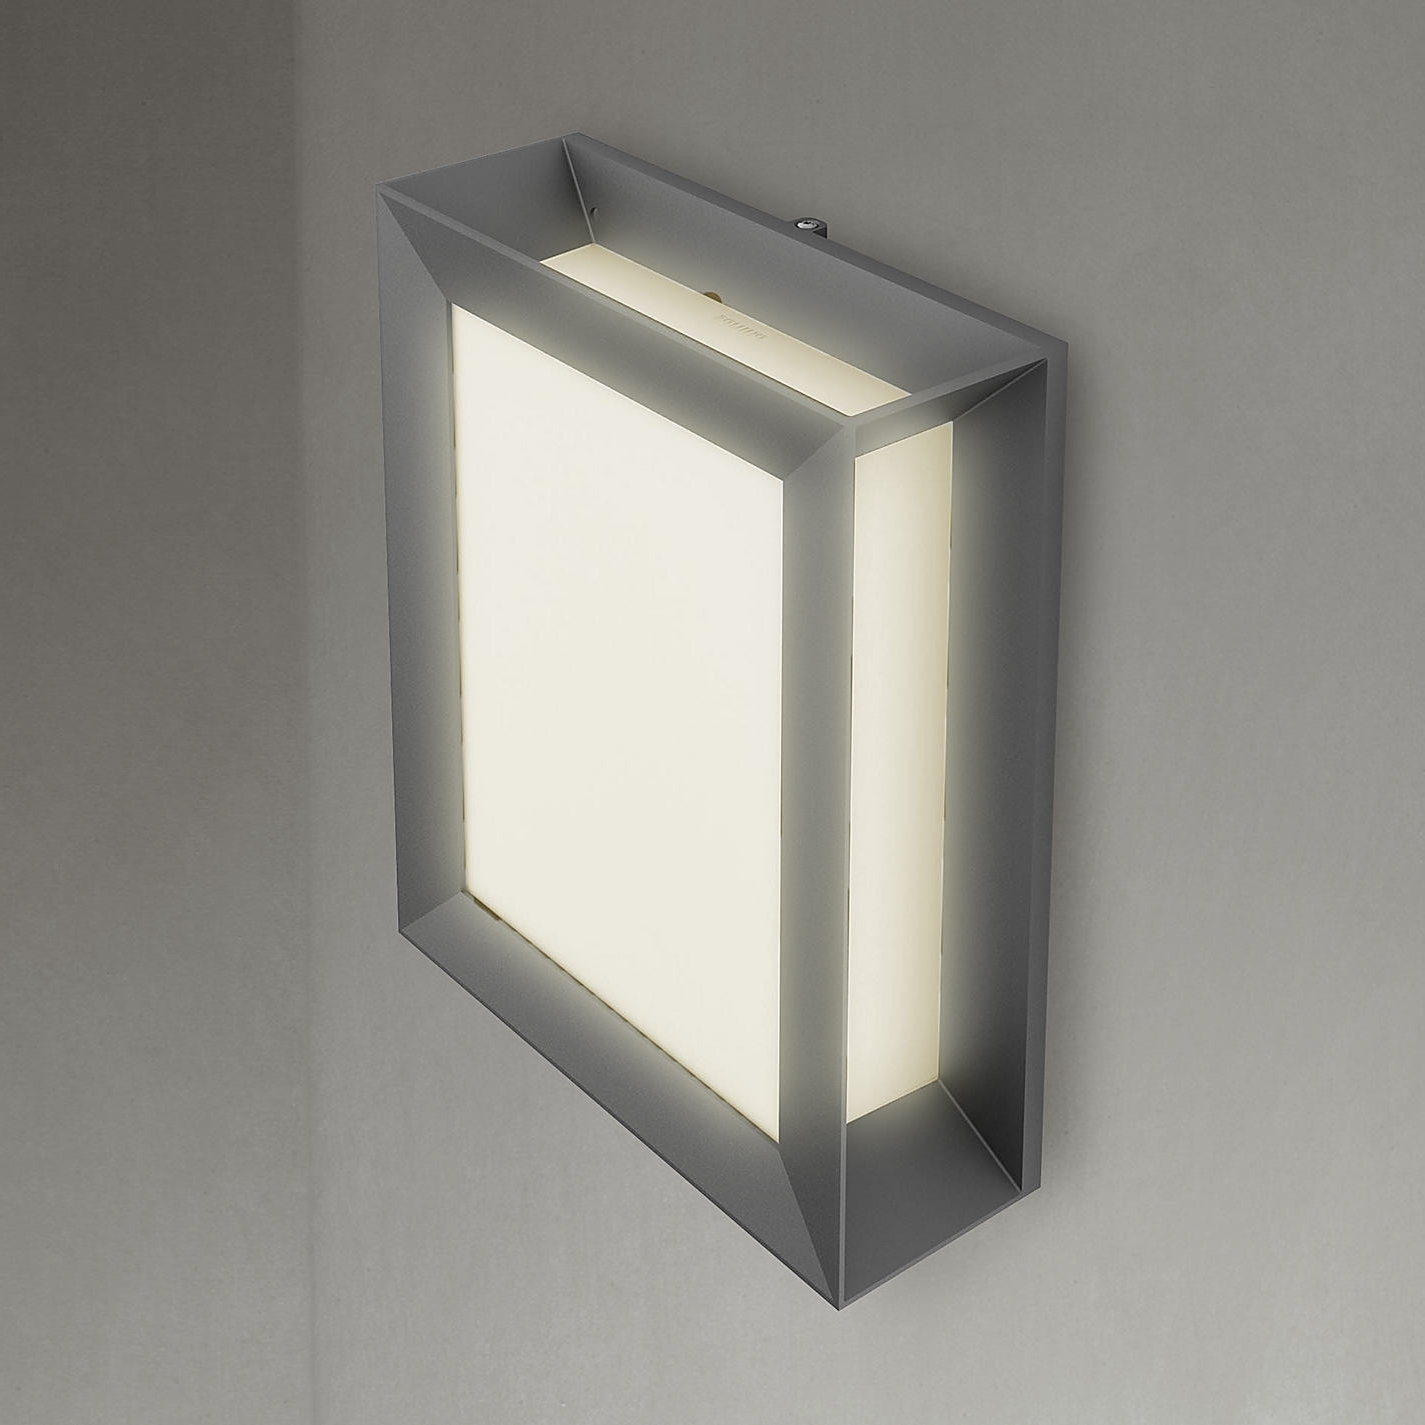 Outdoor Wall Led Lighting Within Most Popular Buy Philips Karp Led Outdoor Wall Light Anthracite John Lewis (View 8 of 20)